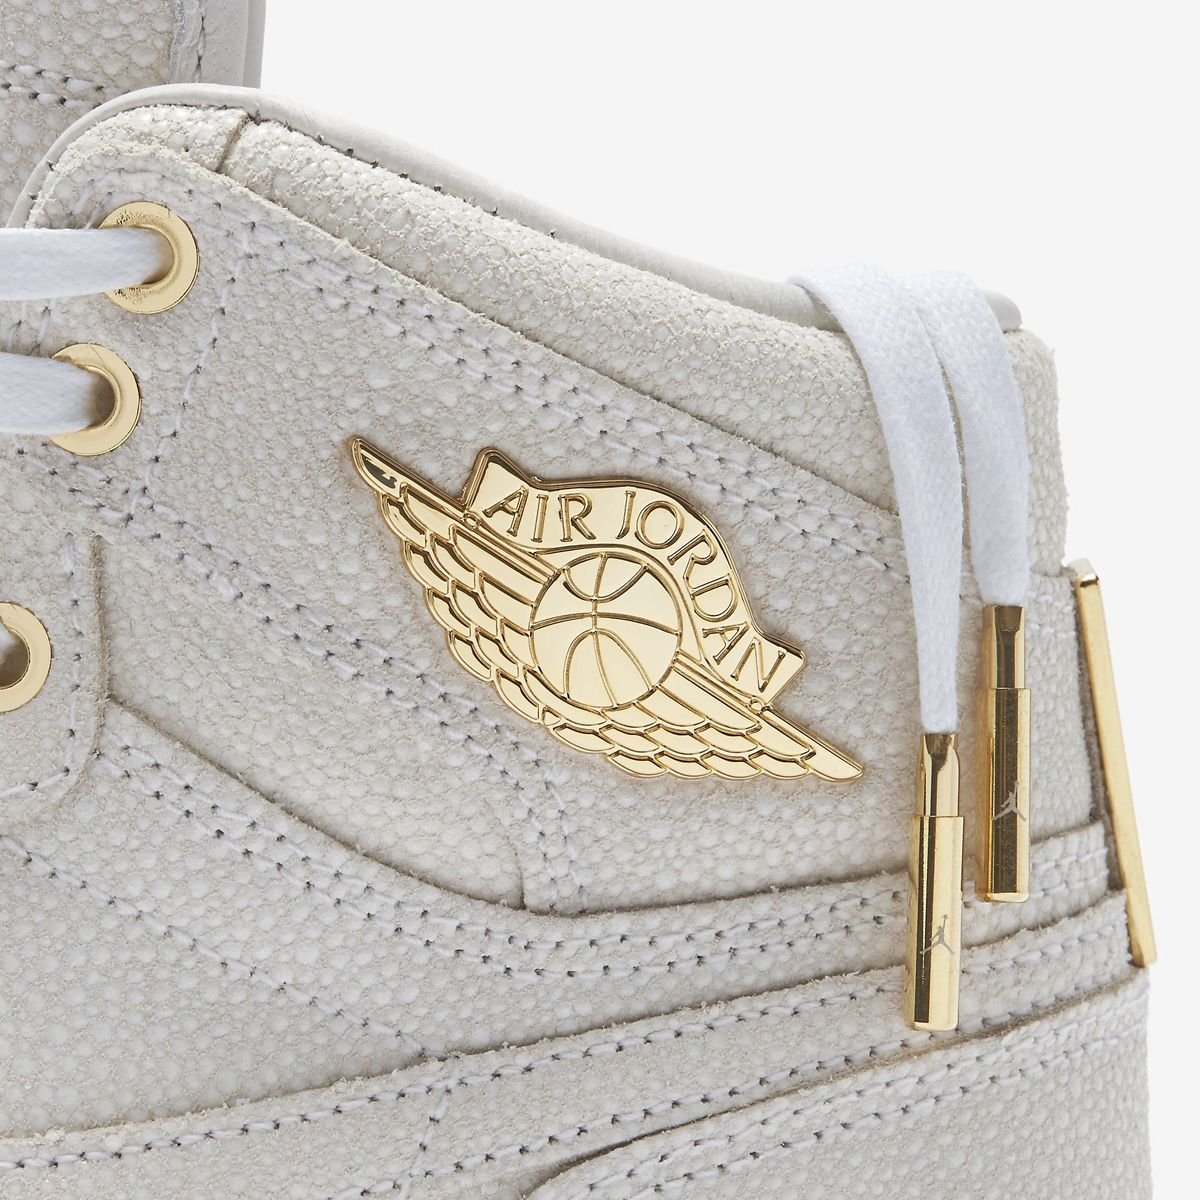 dee753743f2 Air Jordan 1 Pinnacle